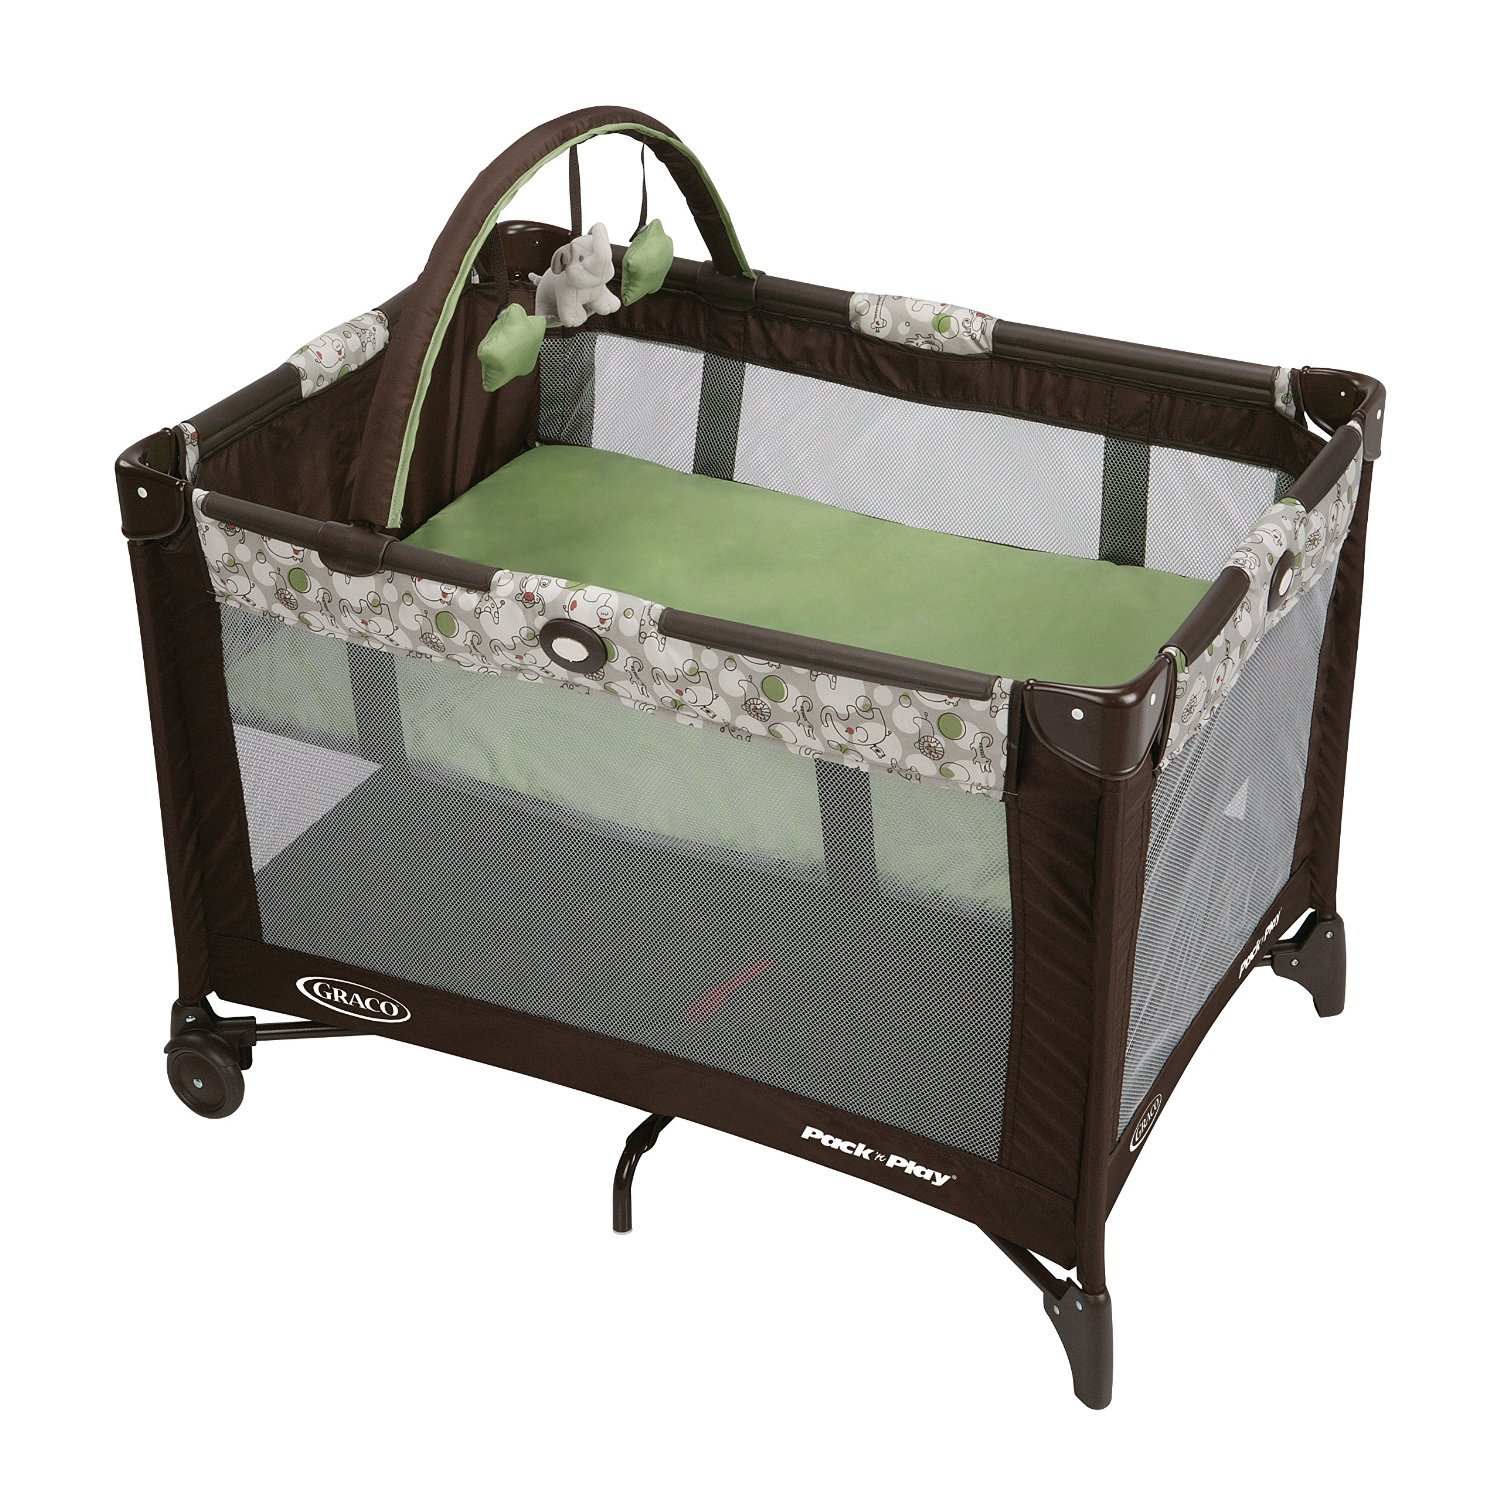 Graco Pack 'n Play On the Go Play Pen with Bassinet, Stratus by Graco